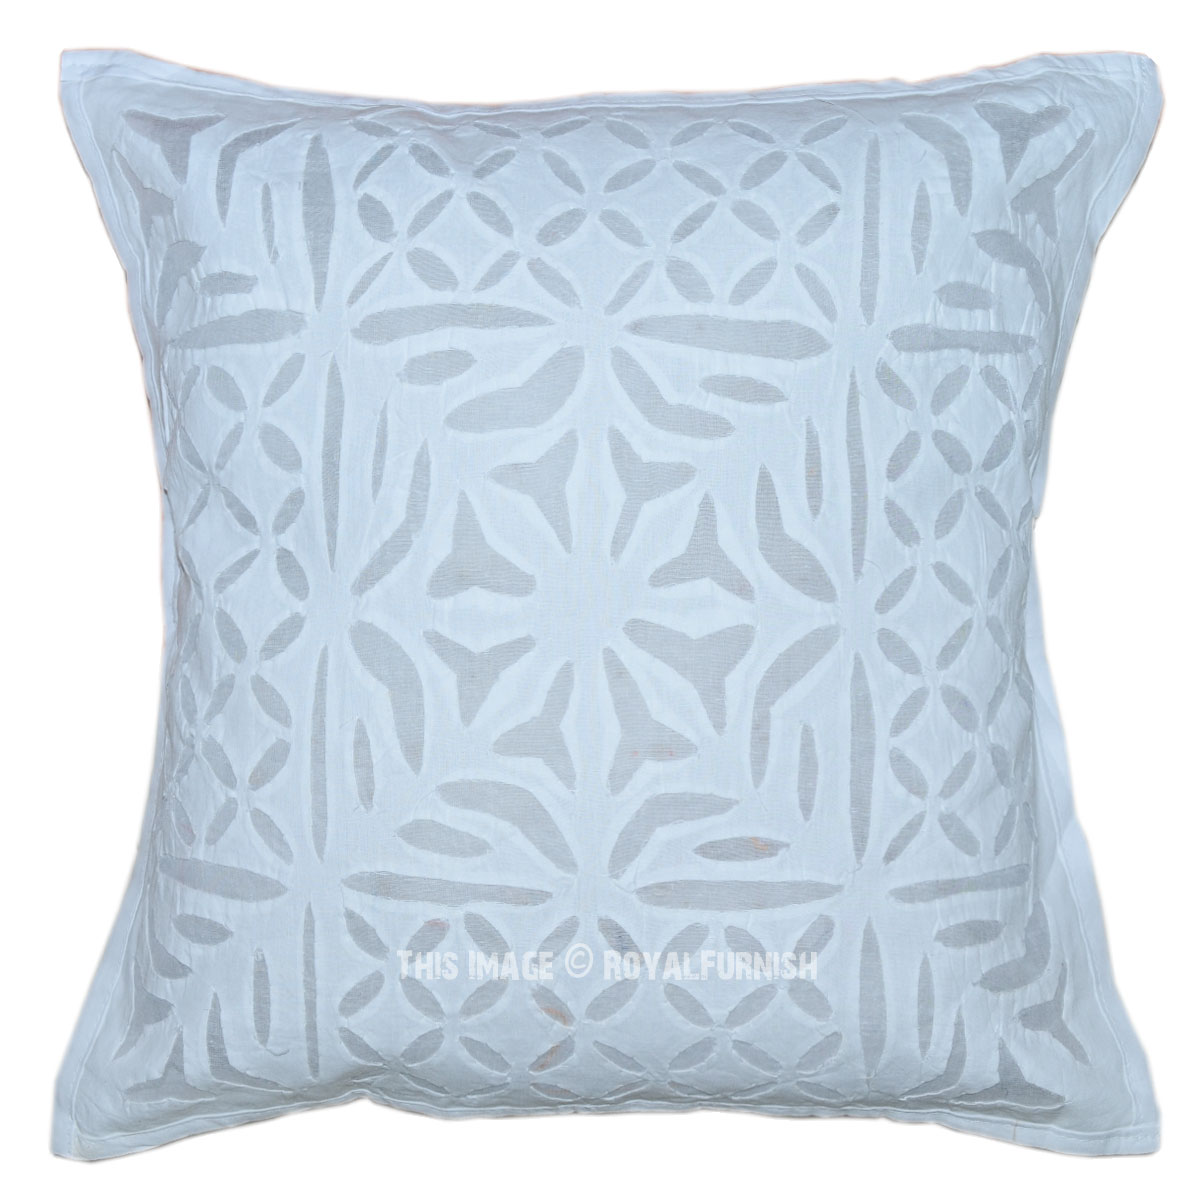 Decorative Pillow Covers 16x16 : 16X16 White Hand Cutwork Floral Pattern Decorative Throw Pillow Cover - RoyalFurnish.com